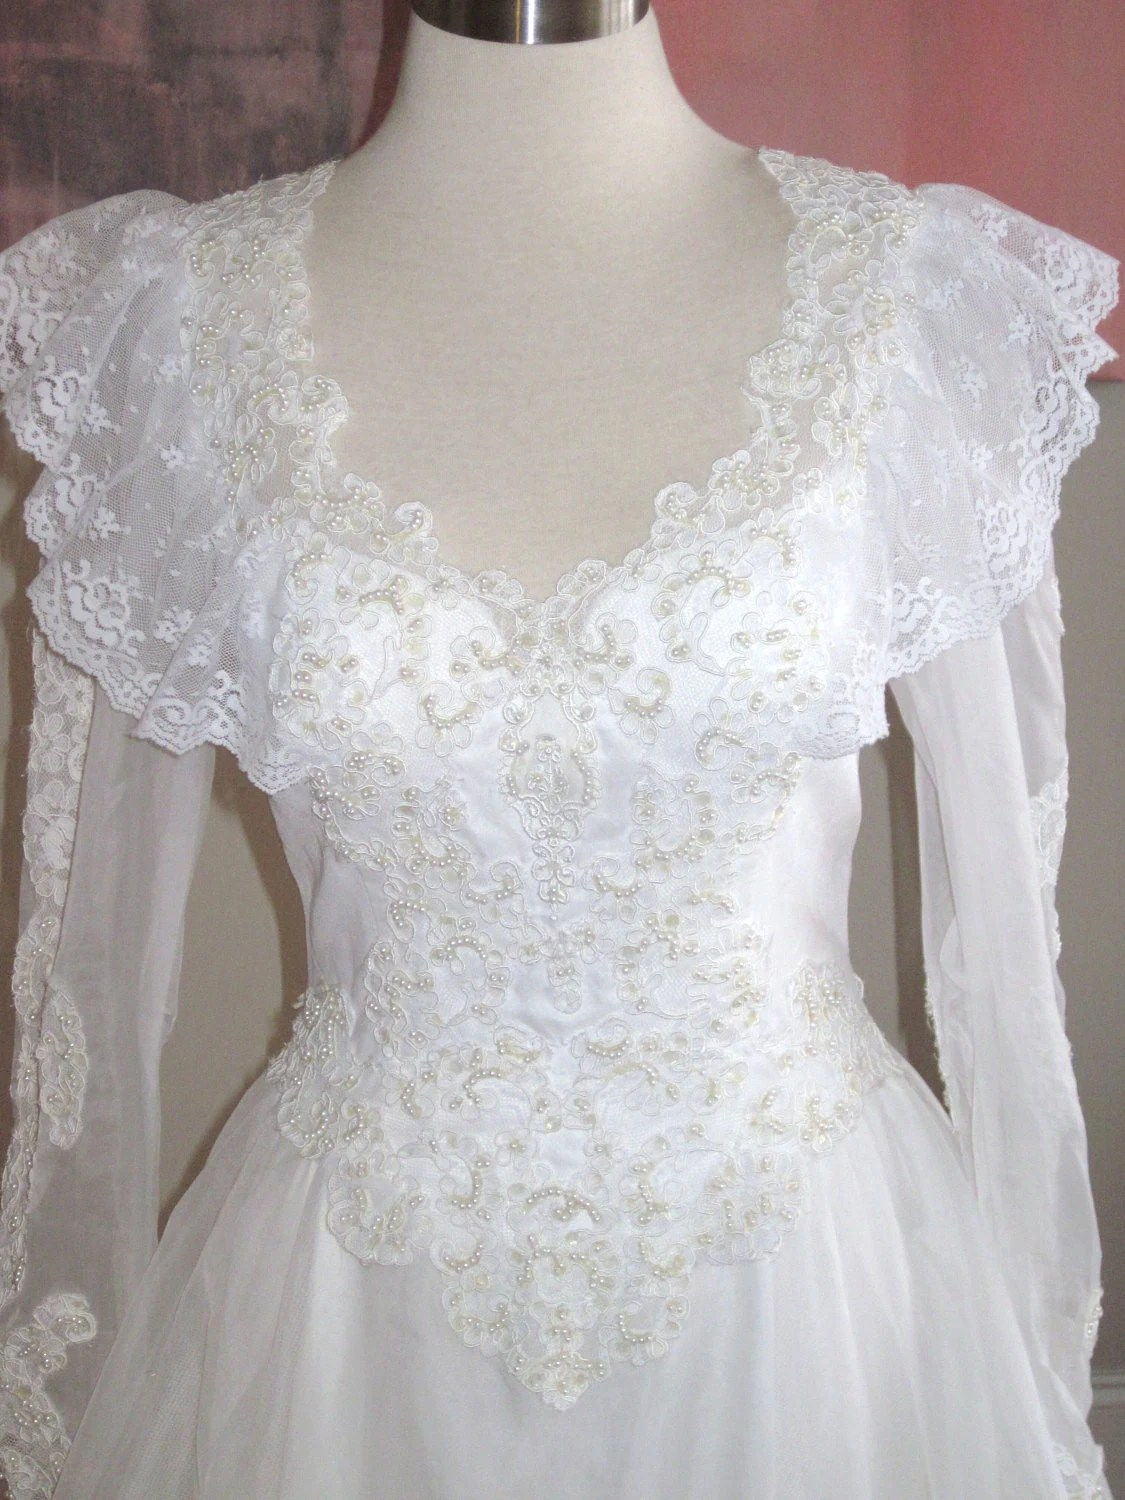 vintage white italian lace wedding gown dress size 6 by